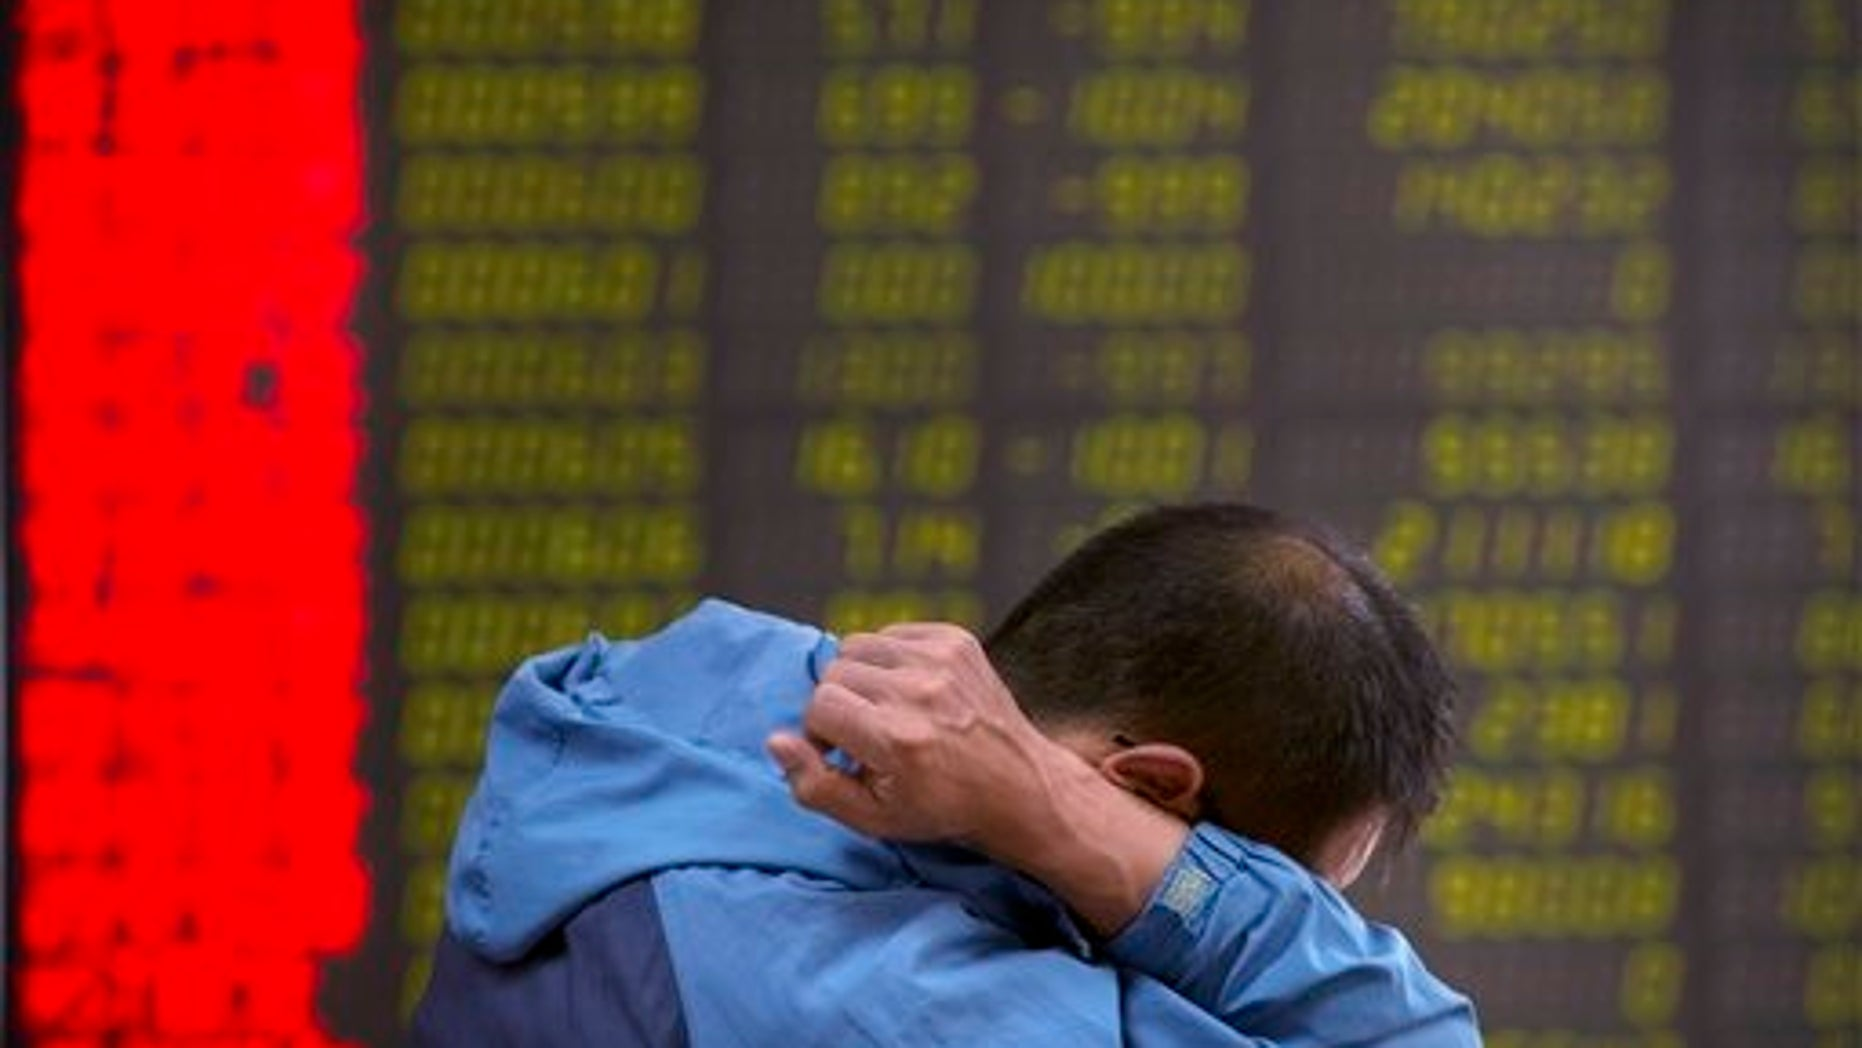 A Chinese investor monitors stock prices at a brokerage house in Beijing, Tuesday, Aug. 25, 2015.  China's main stock market index has fallen for a fourth day, plunging 7.6 percent to an eight-month low.  (AP Photo/Mark Schiefelbein)